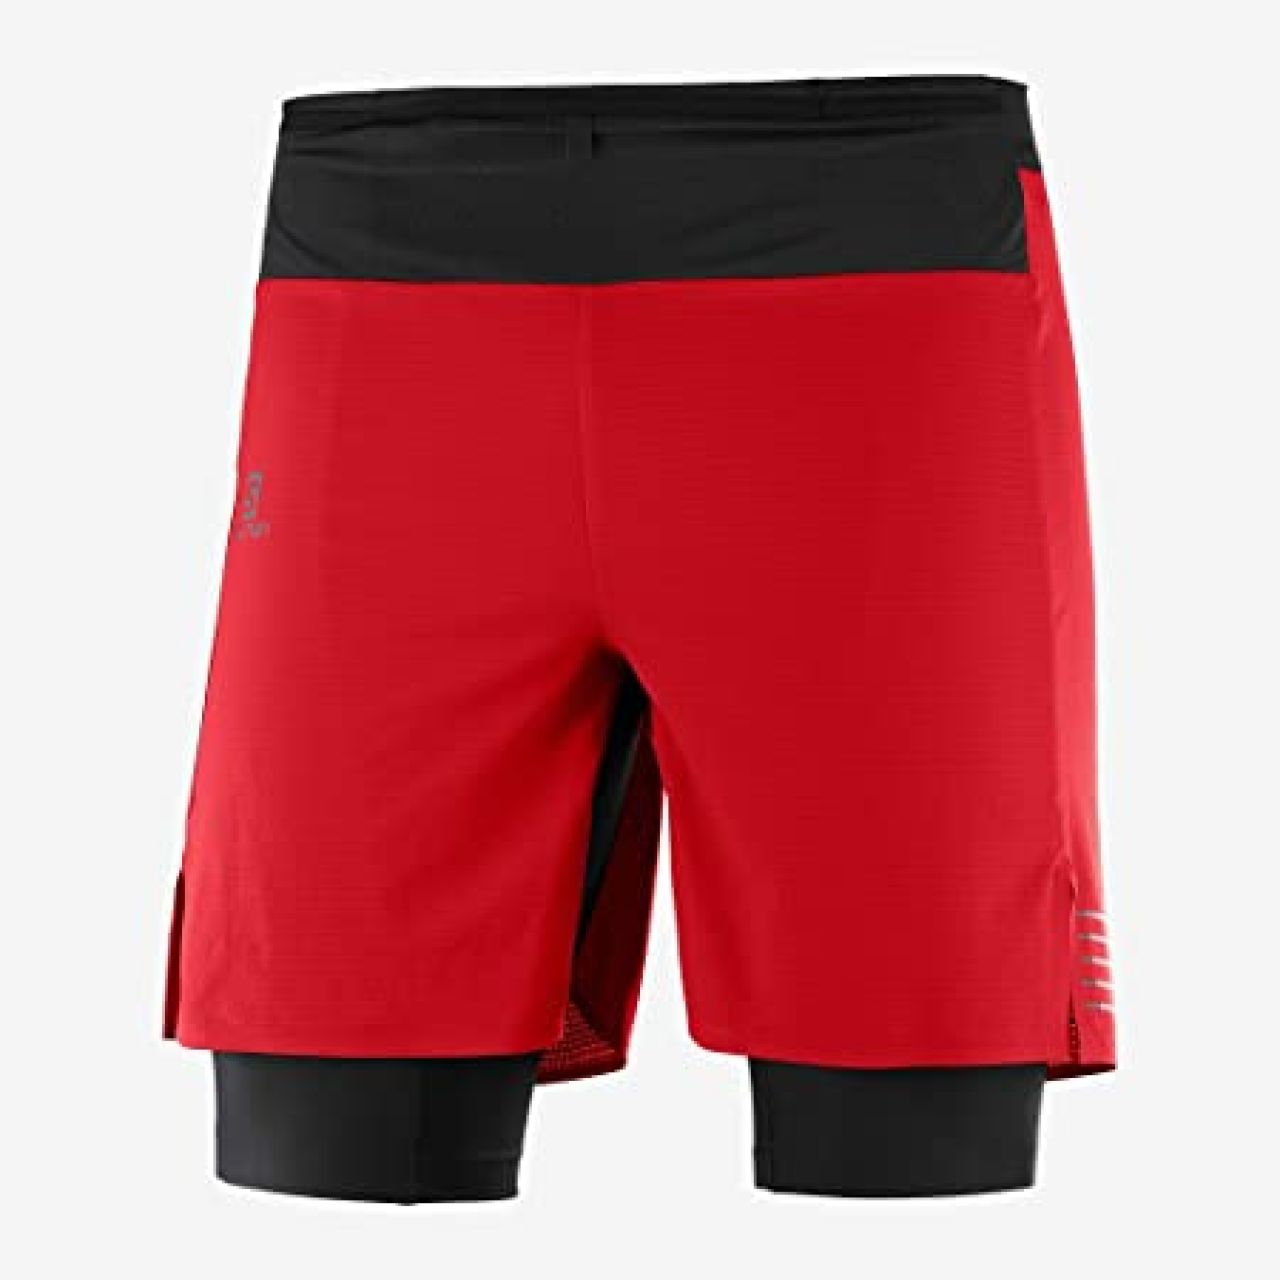 SALOMON EXO TWINSKIN SHORT ROUGE  Short Running 2 en 1